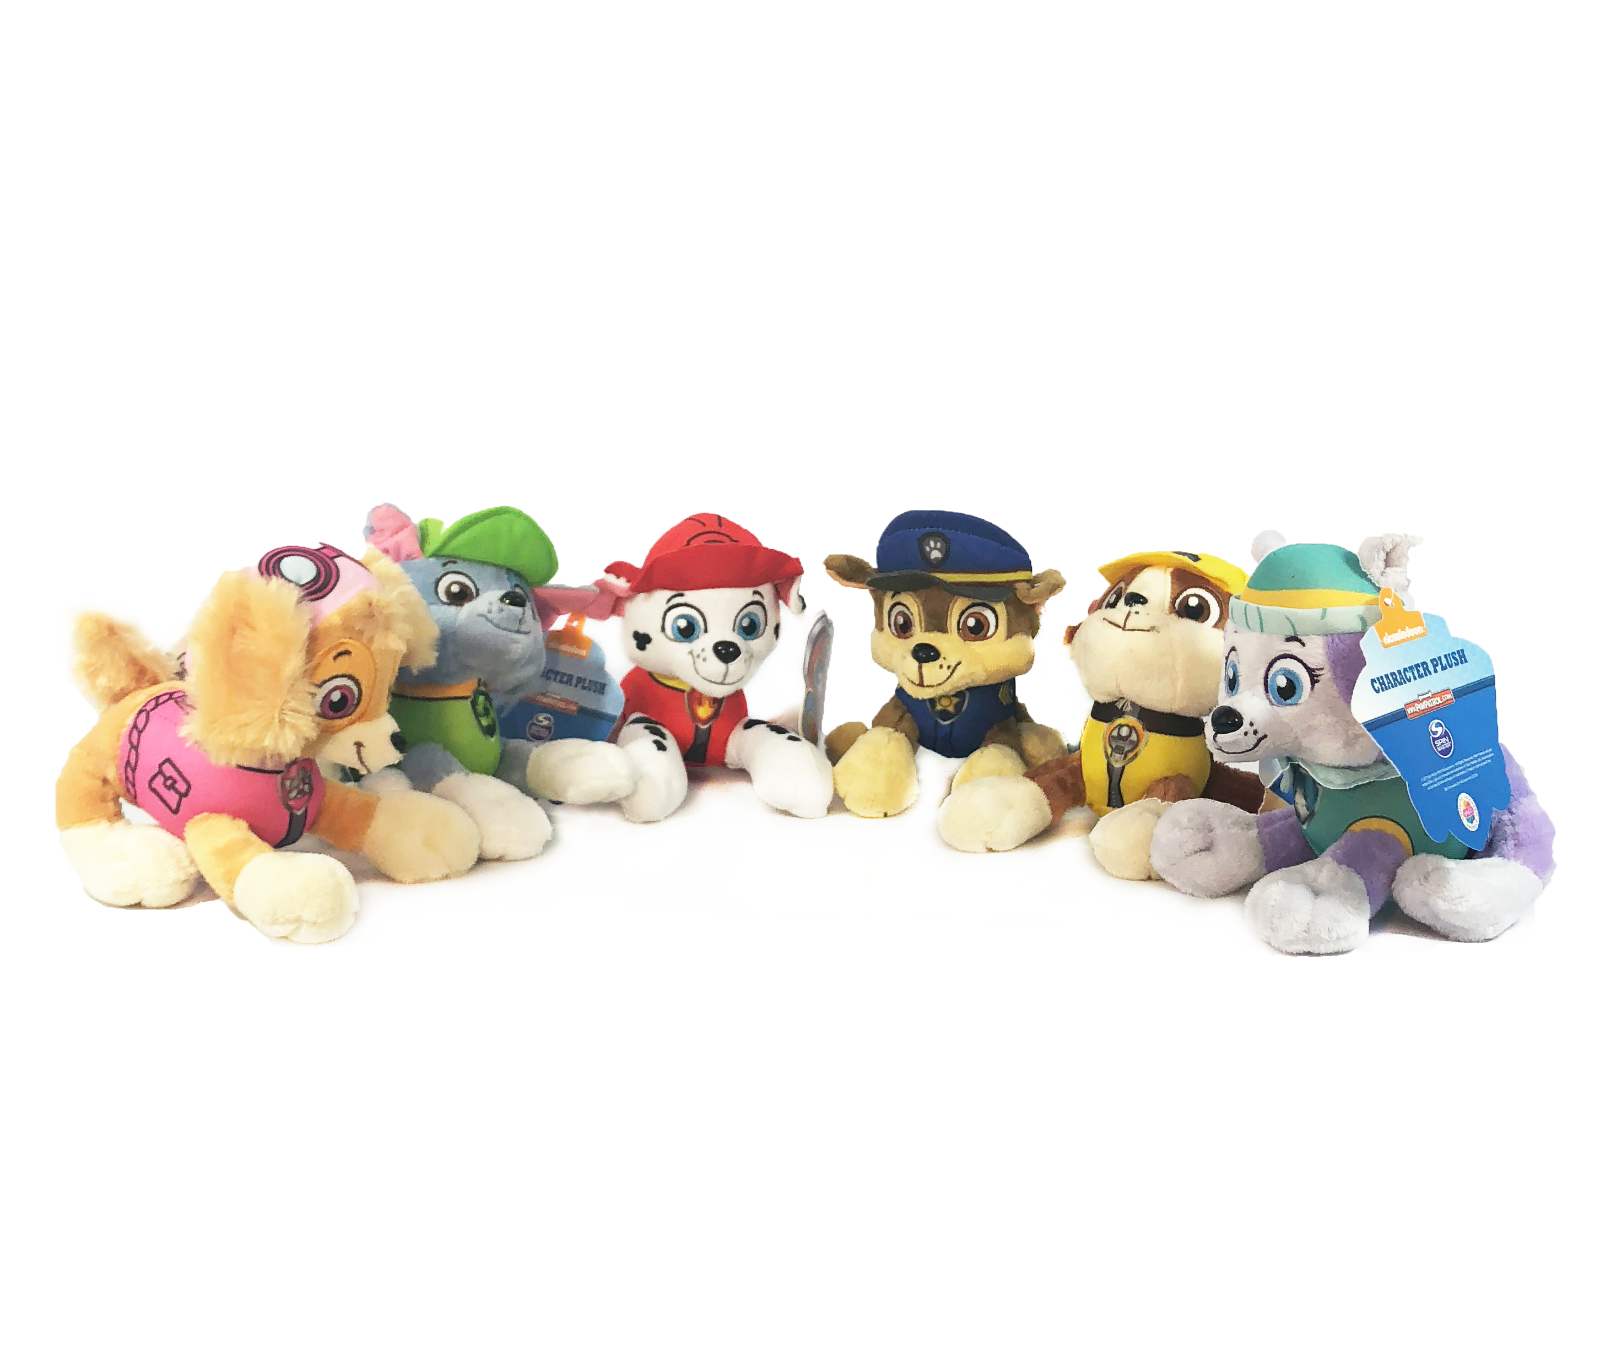 "New 6"" Paw Patrol Plush Stuffed Animal Toy Set of 6 pics"